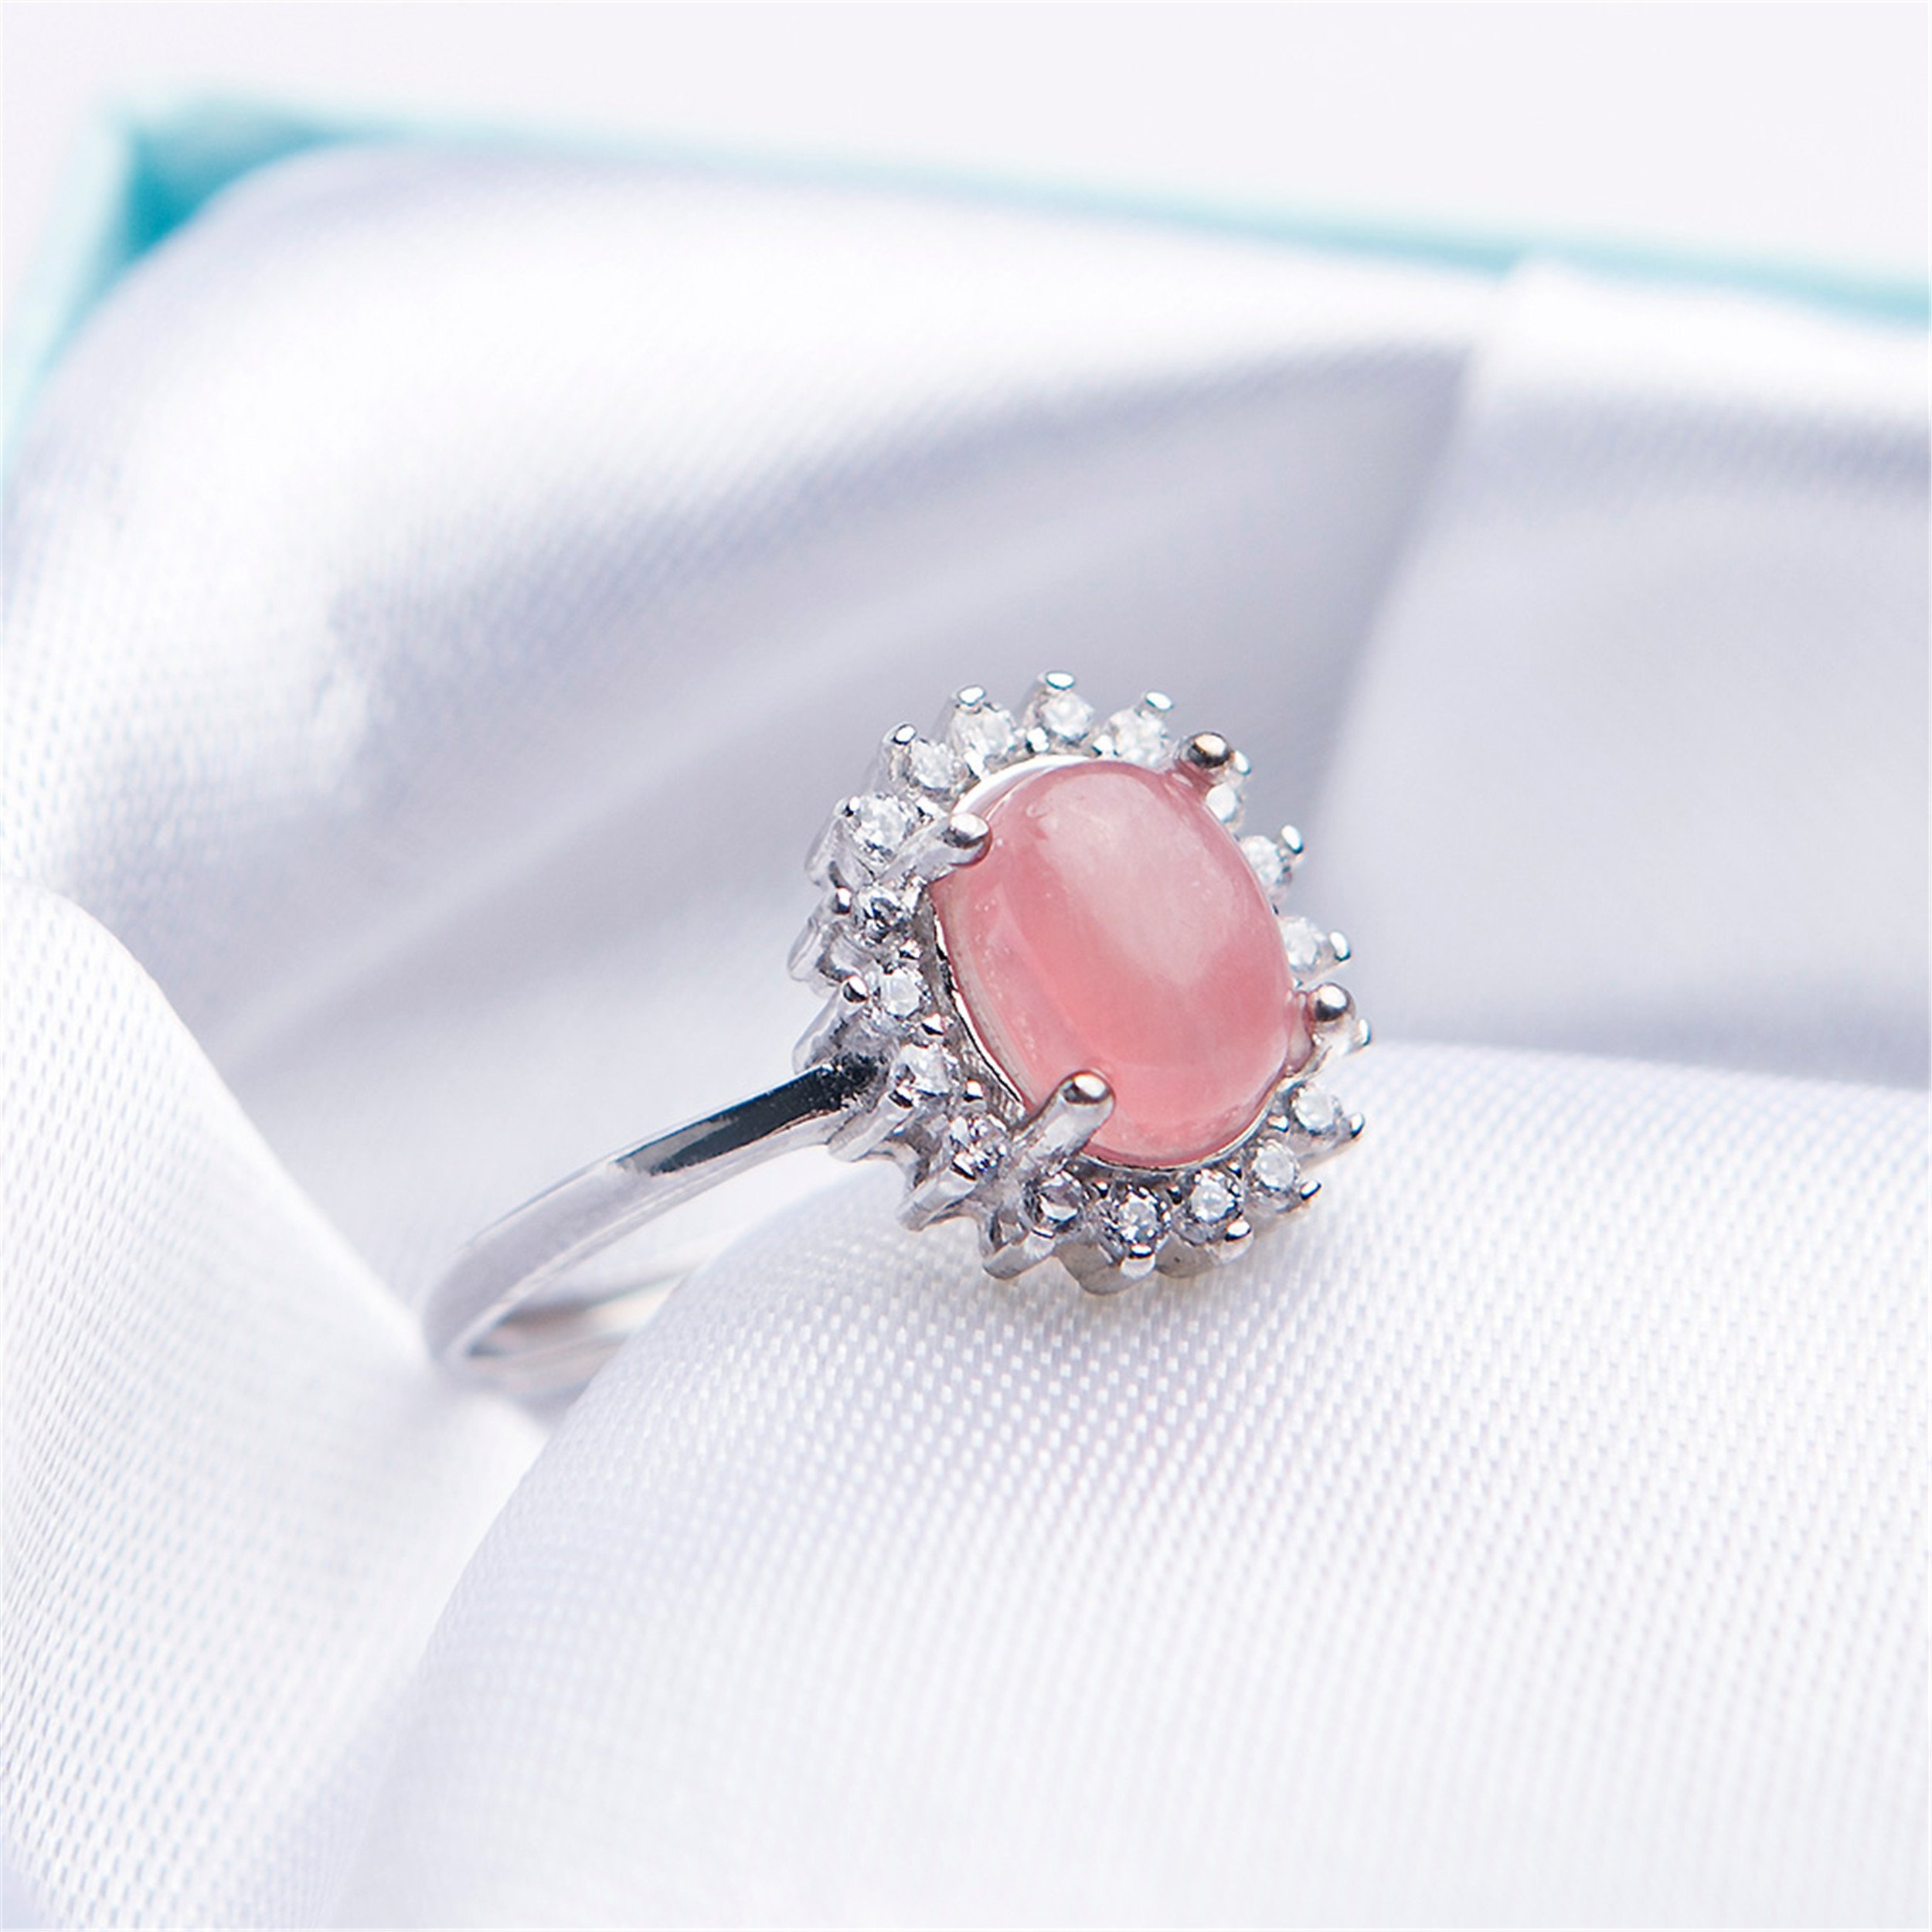 LiZiFang Natural Red Rhodochrosite Gemstone Crystal Fashion Silver Wedding Rings Adjustable Size by LiZiFang (Image #2)